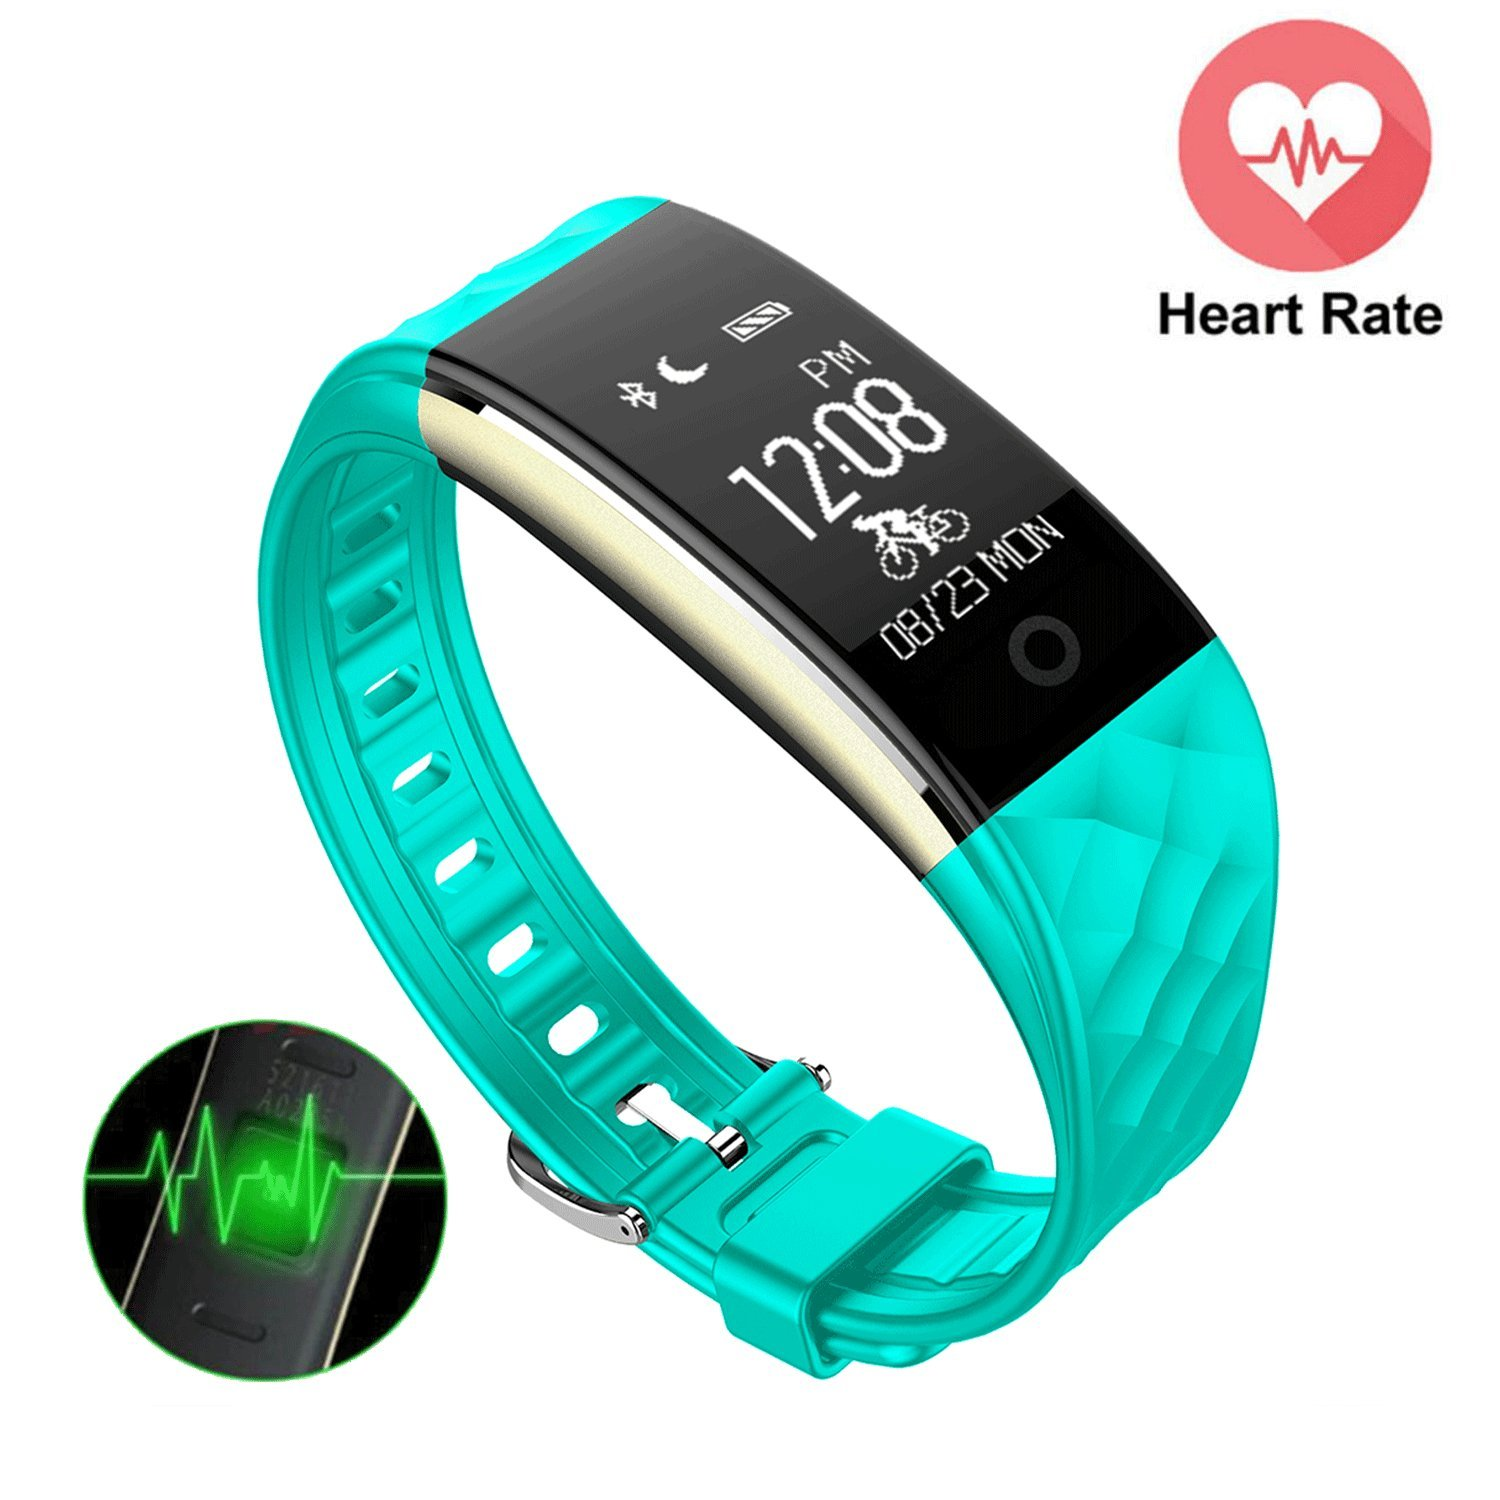 Mini Kitty S2 Fitness Tracker Heart Rate Monitor Upgrade Version Smart Wristband IP67 Waterproof Swimming,GPS Bicycling Tracker Smart Bracelet For Android IOS Phone, IPad (Green)